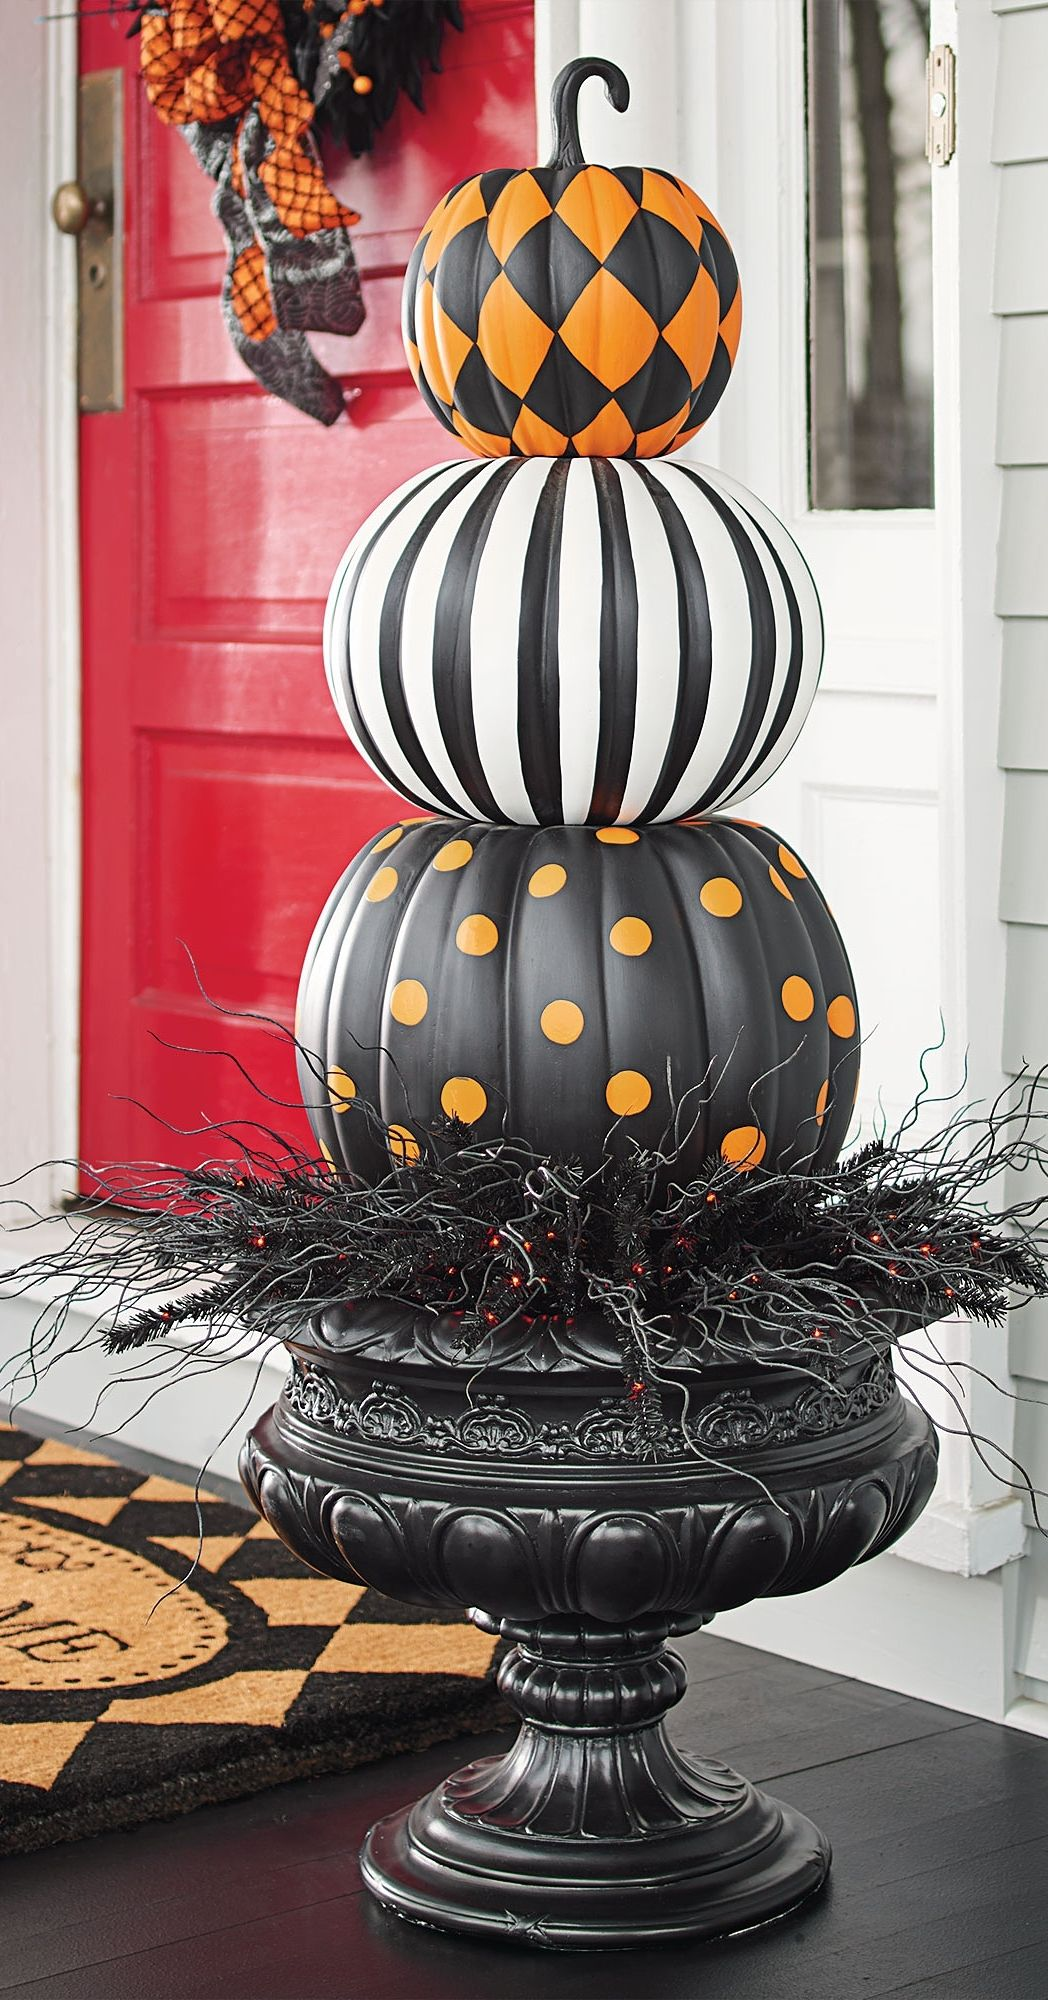 Decoration Extérieure Halloween Put A Designer Spin On Decorating With Gourds Our